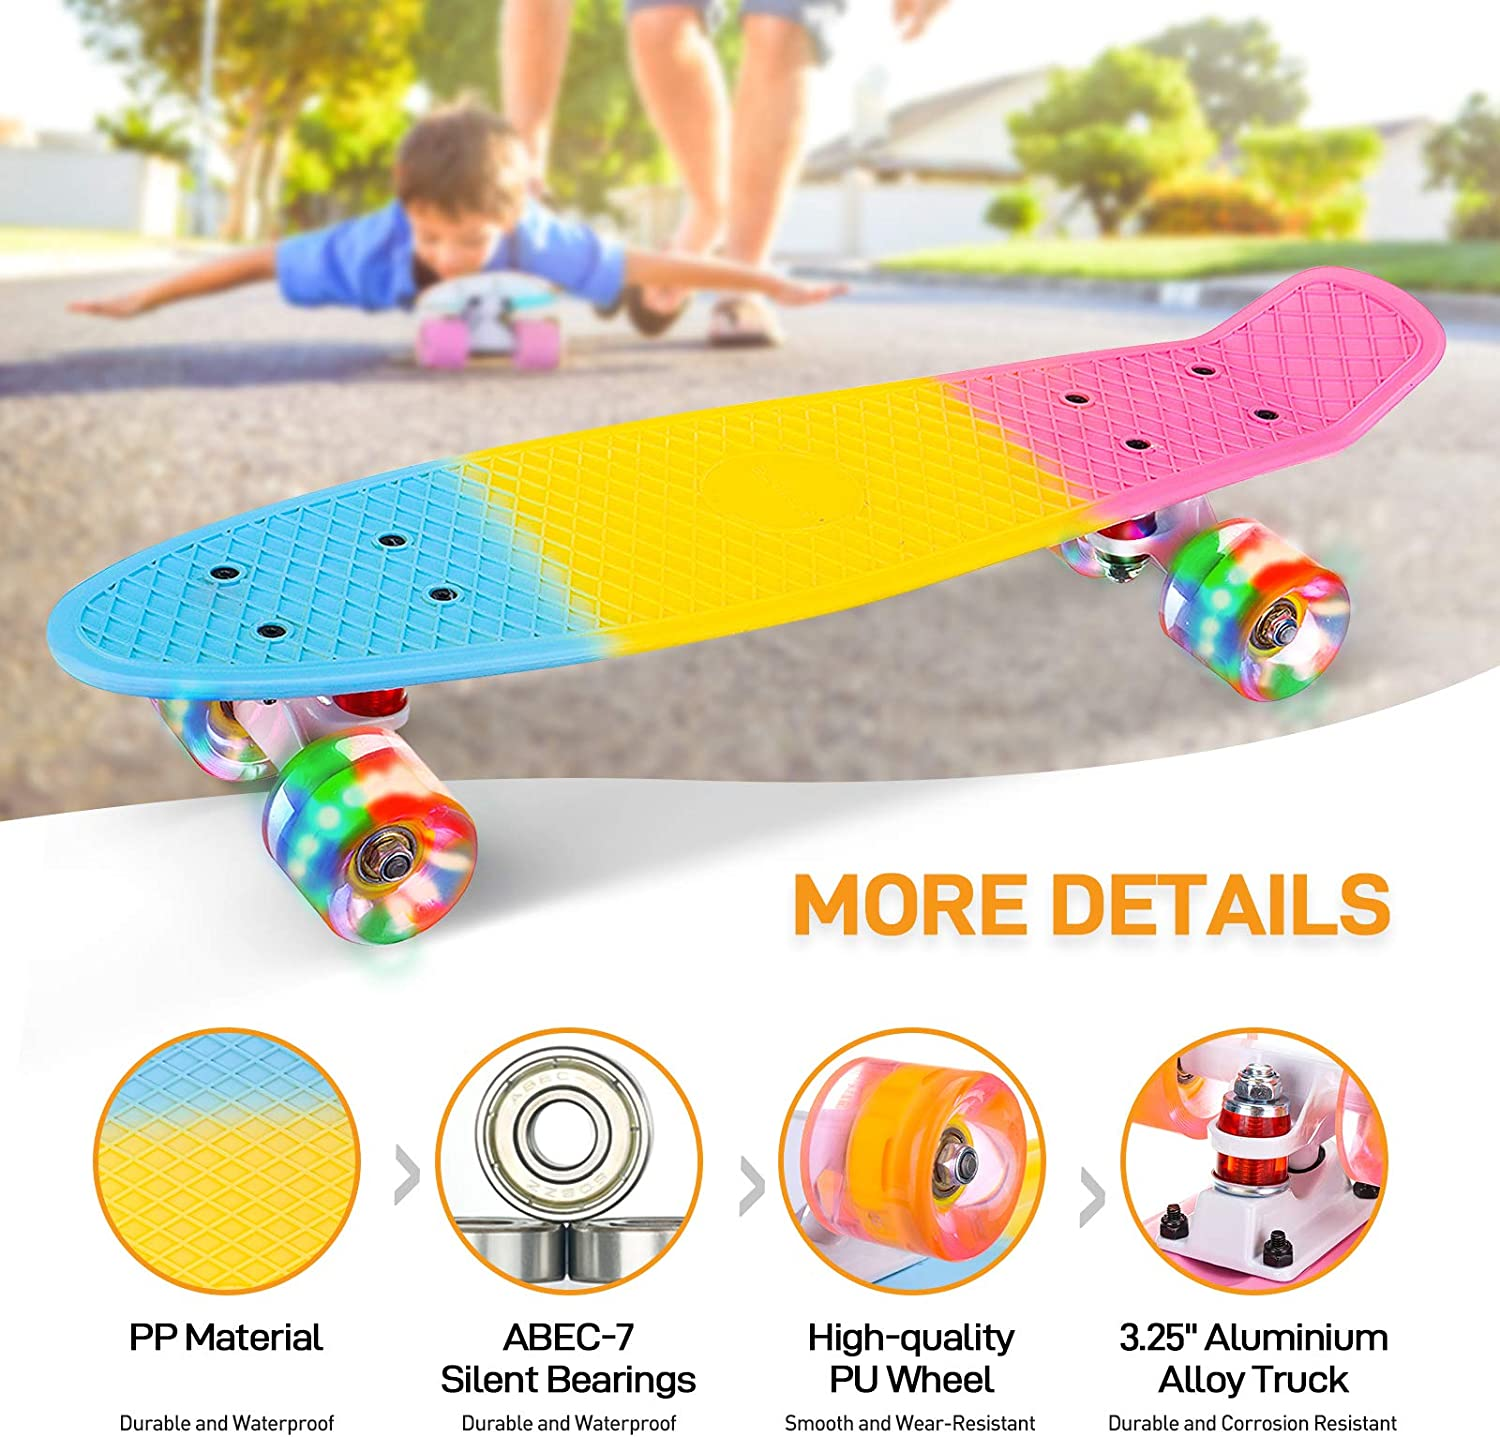 SGODDE 22 Inch Skateboards Complete Mini Cruiser Retro Skateboard Colorful LED Light up Wheels with All-in-One Skate T-Tool for Kids Teens Girls Boys Youths Beginners